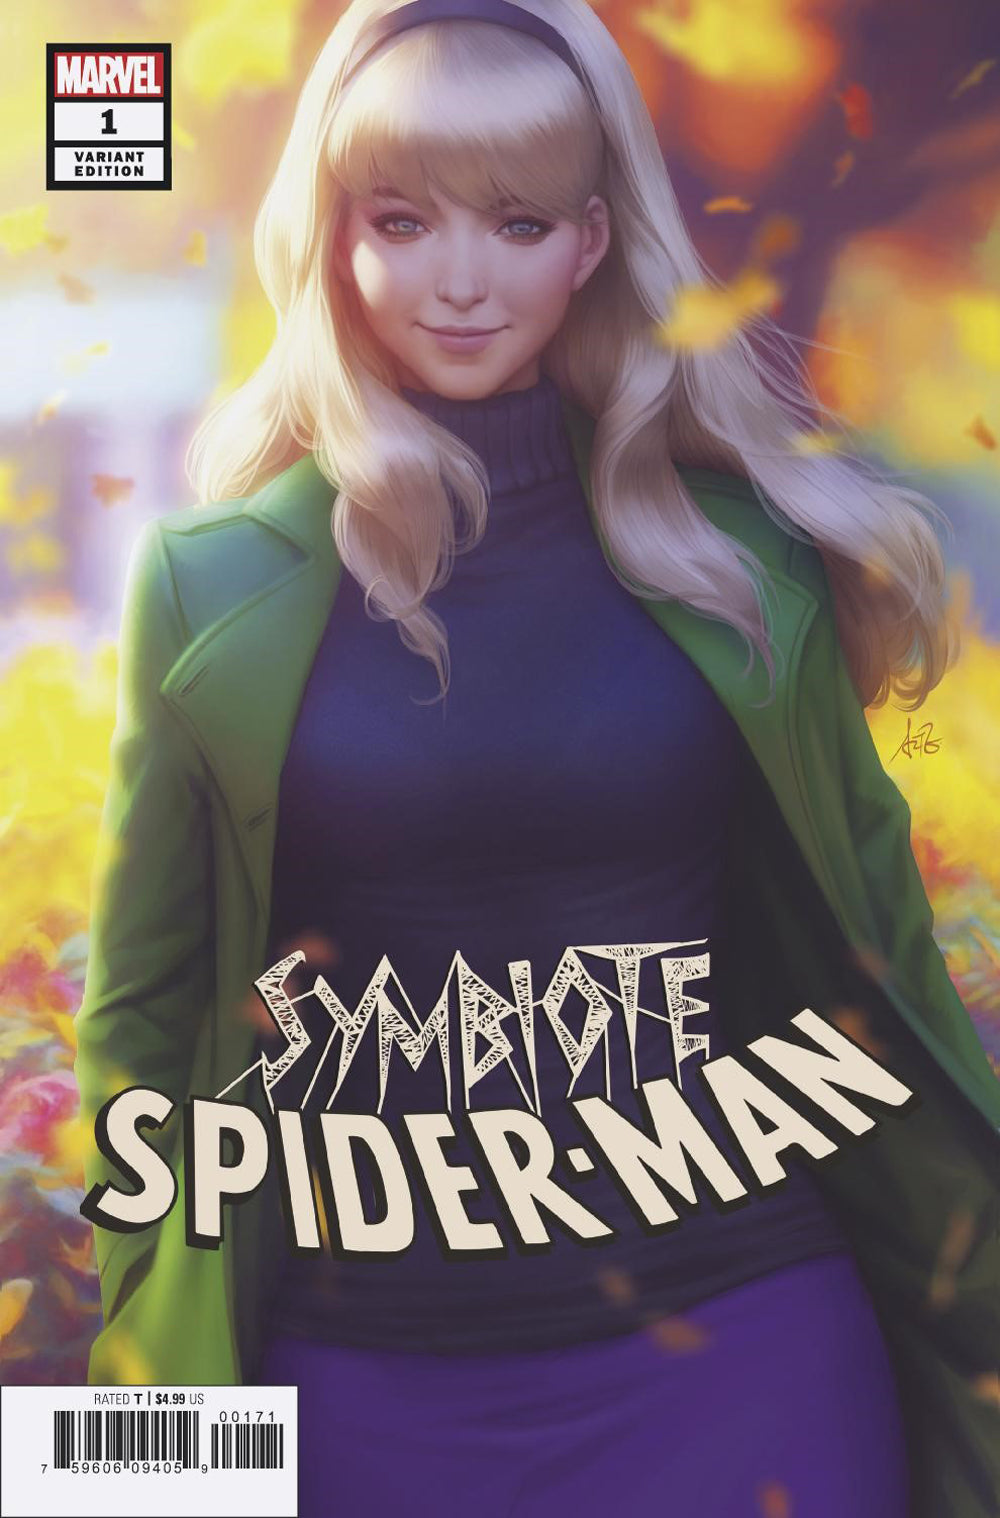 Symbiote Spider-man Artgerm Trade Dress Variant Edition Signed (PRE-ORDER 4/10/19 RELEASE DATE)